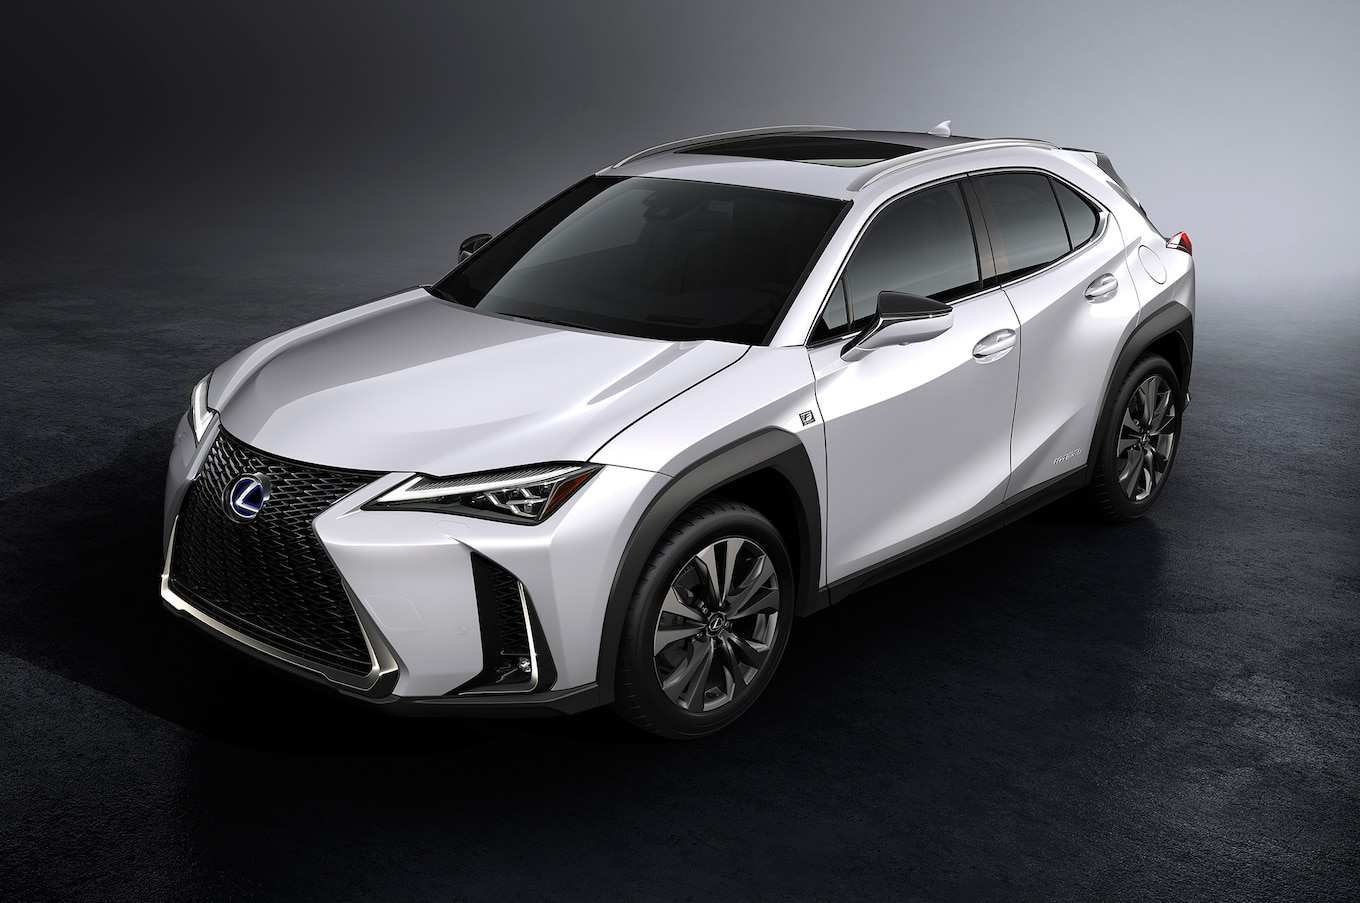 76 The Lexus Ux 2019 Price 2 Redesign And Review